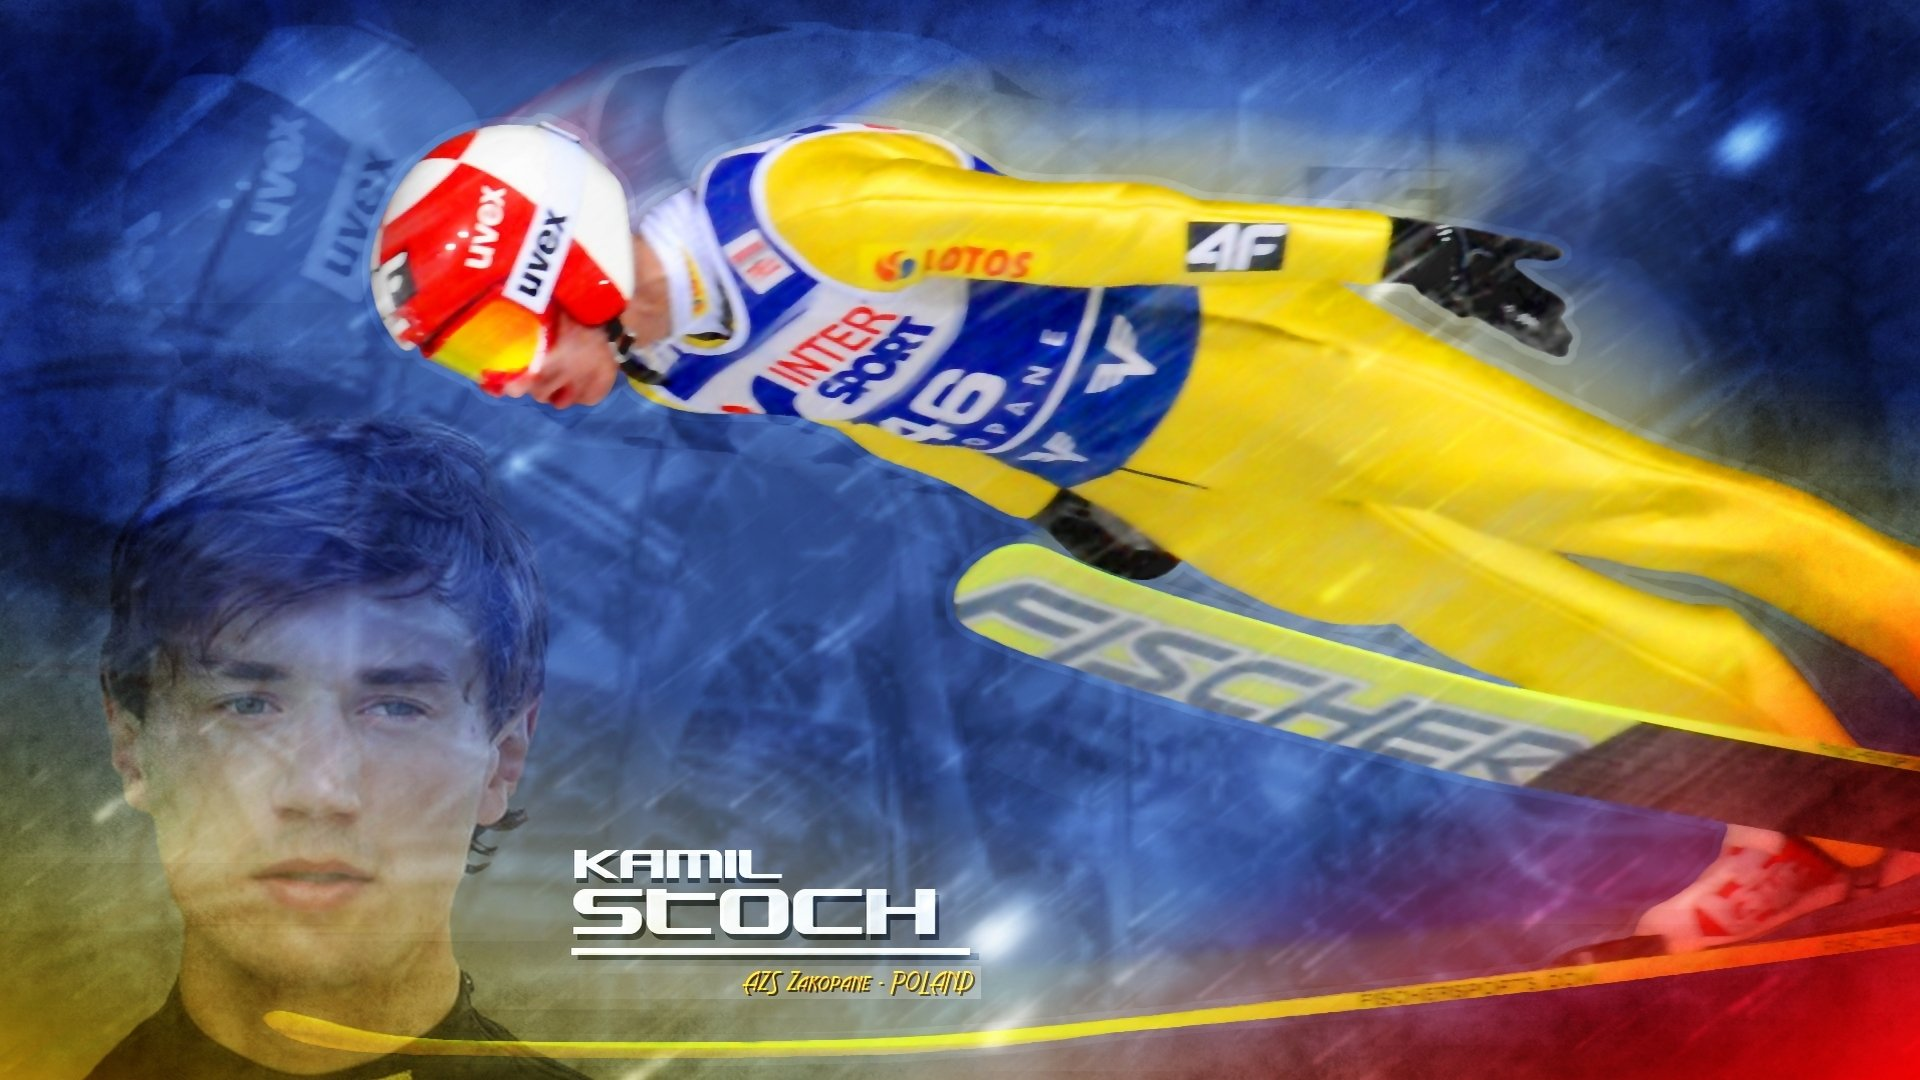 1920x1080 - Kamil Stoch Wallpapers 12